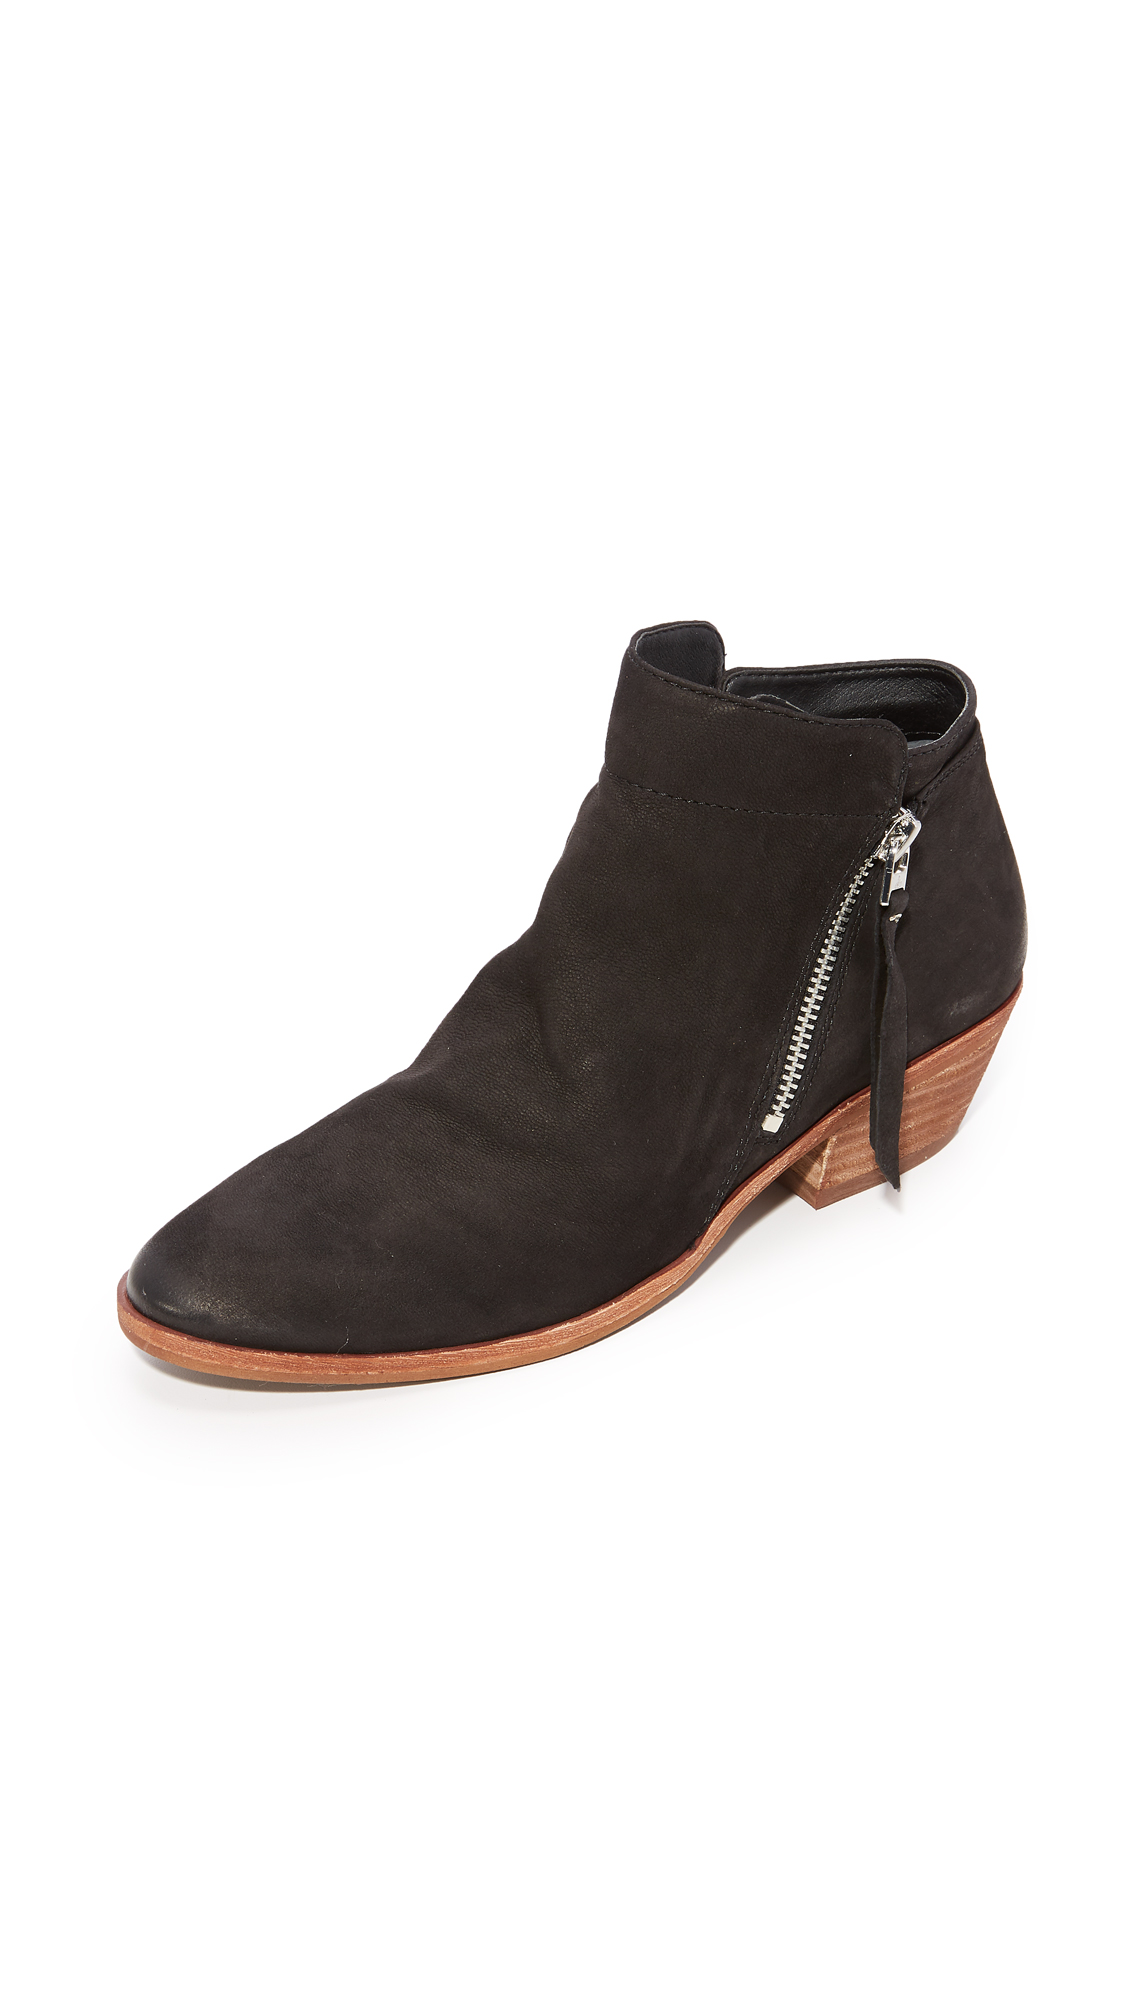 Sam Edelman Packer Booties - Black